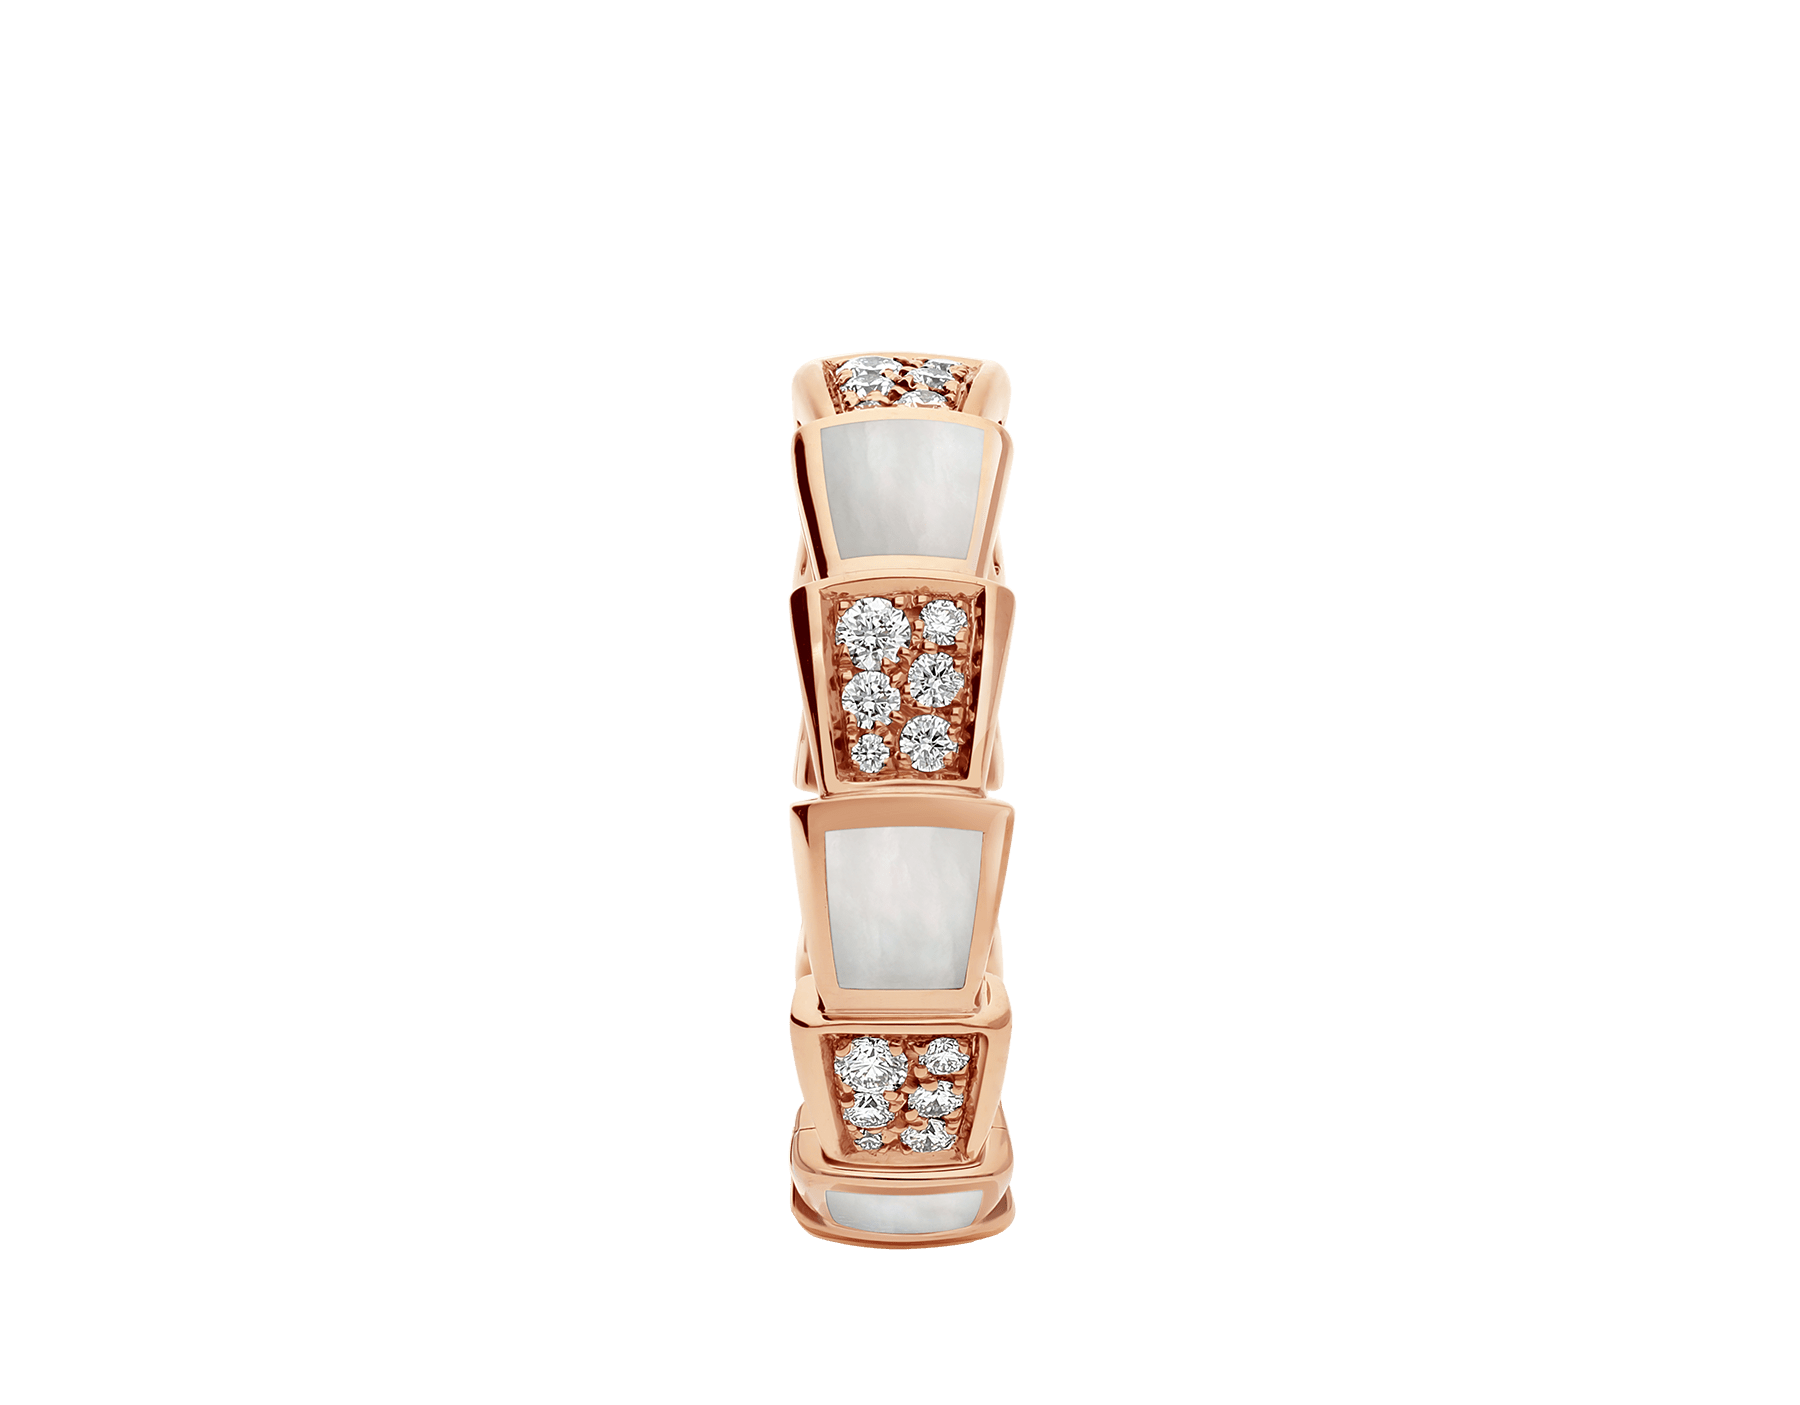 Serpenti Viper band ring in 18 kt rose gold set with mother-of-pearl elements and pavé diamonds . AN858043 image 2